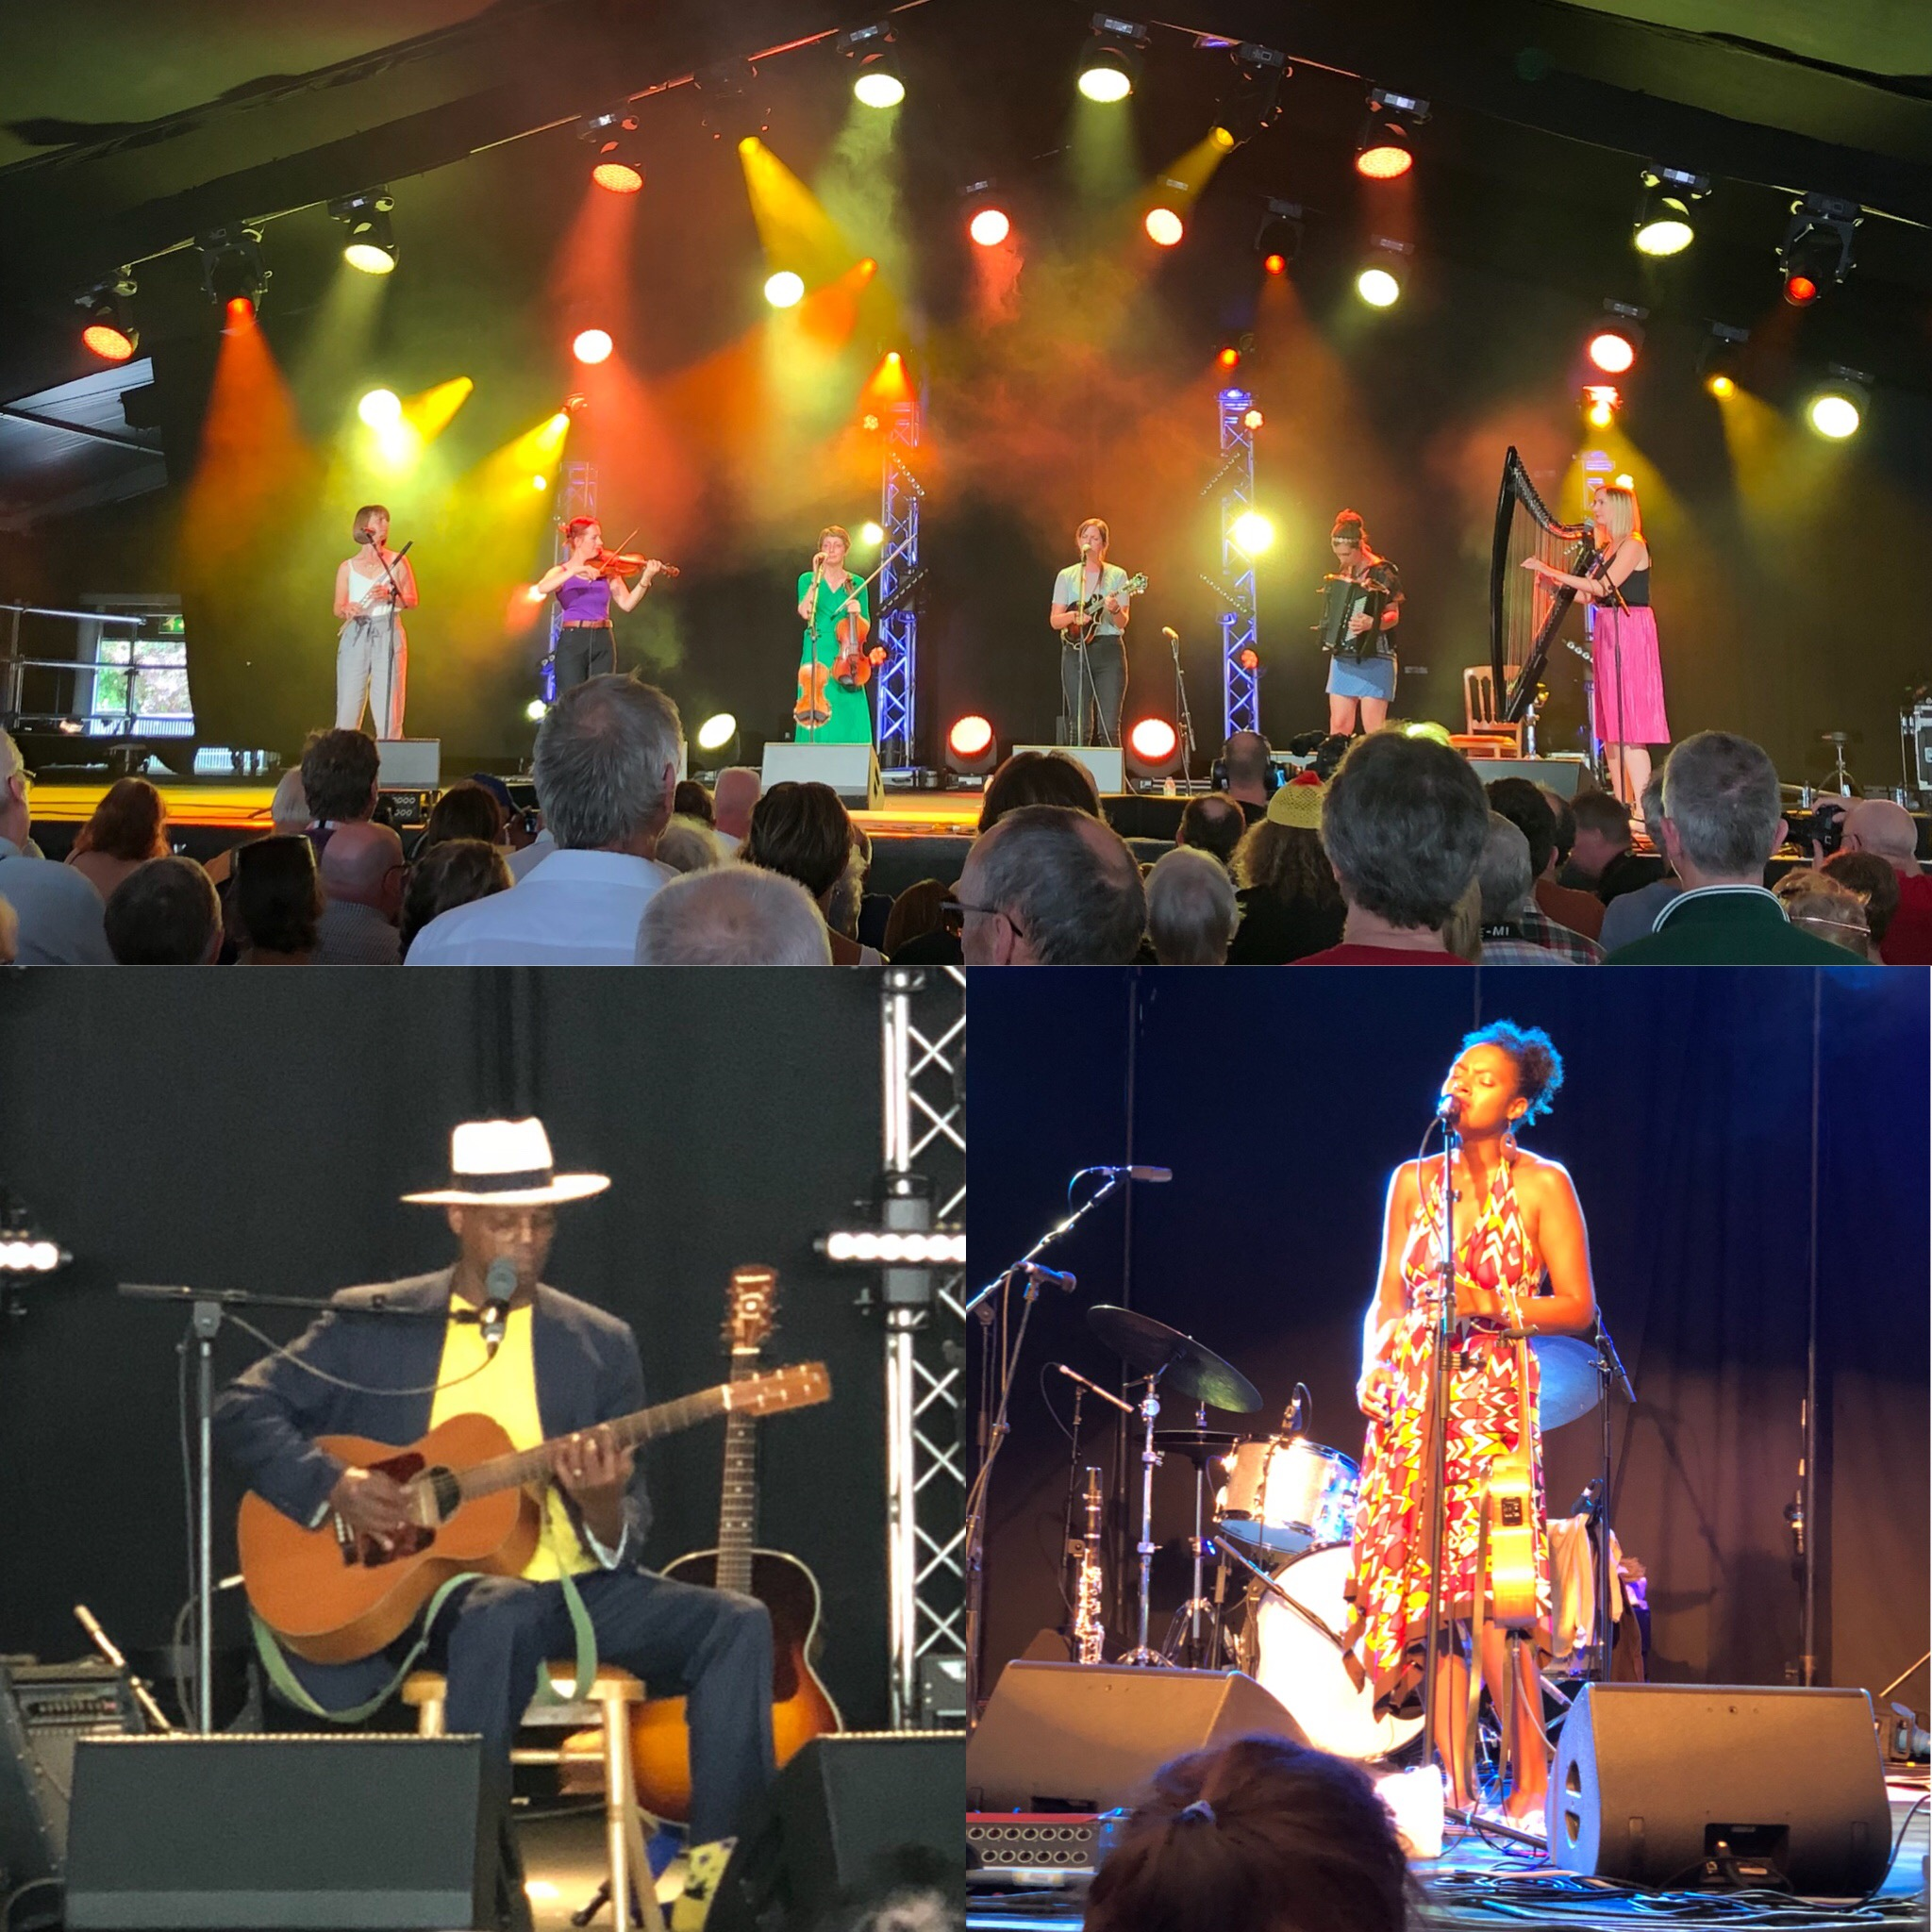 Cambridge Festival: The Shee, Eric Bibb And Alison Russell From The Birds Of Chicago